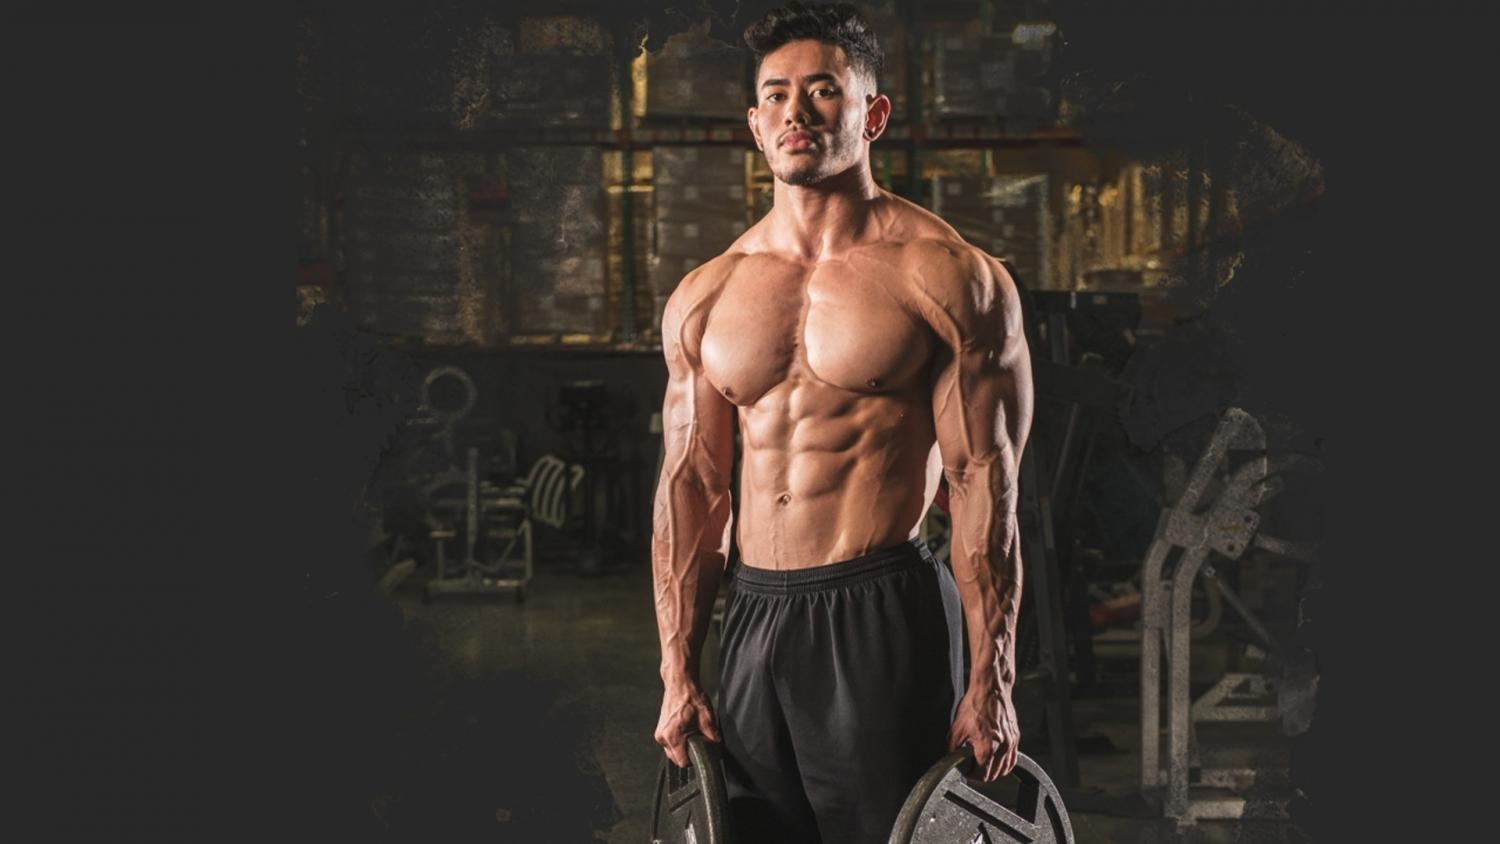 Ultimate Physique Academy: Training by Steven Cao in TrainHeroic